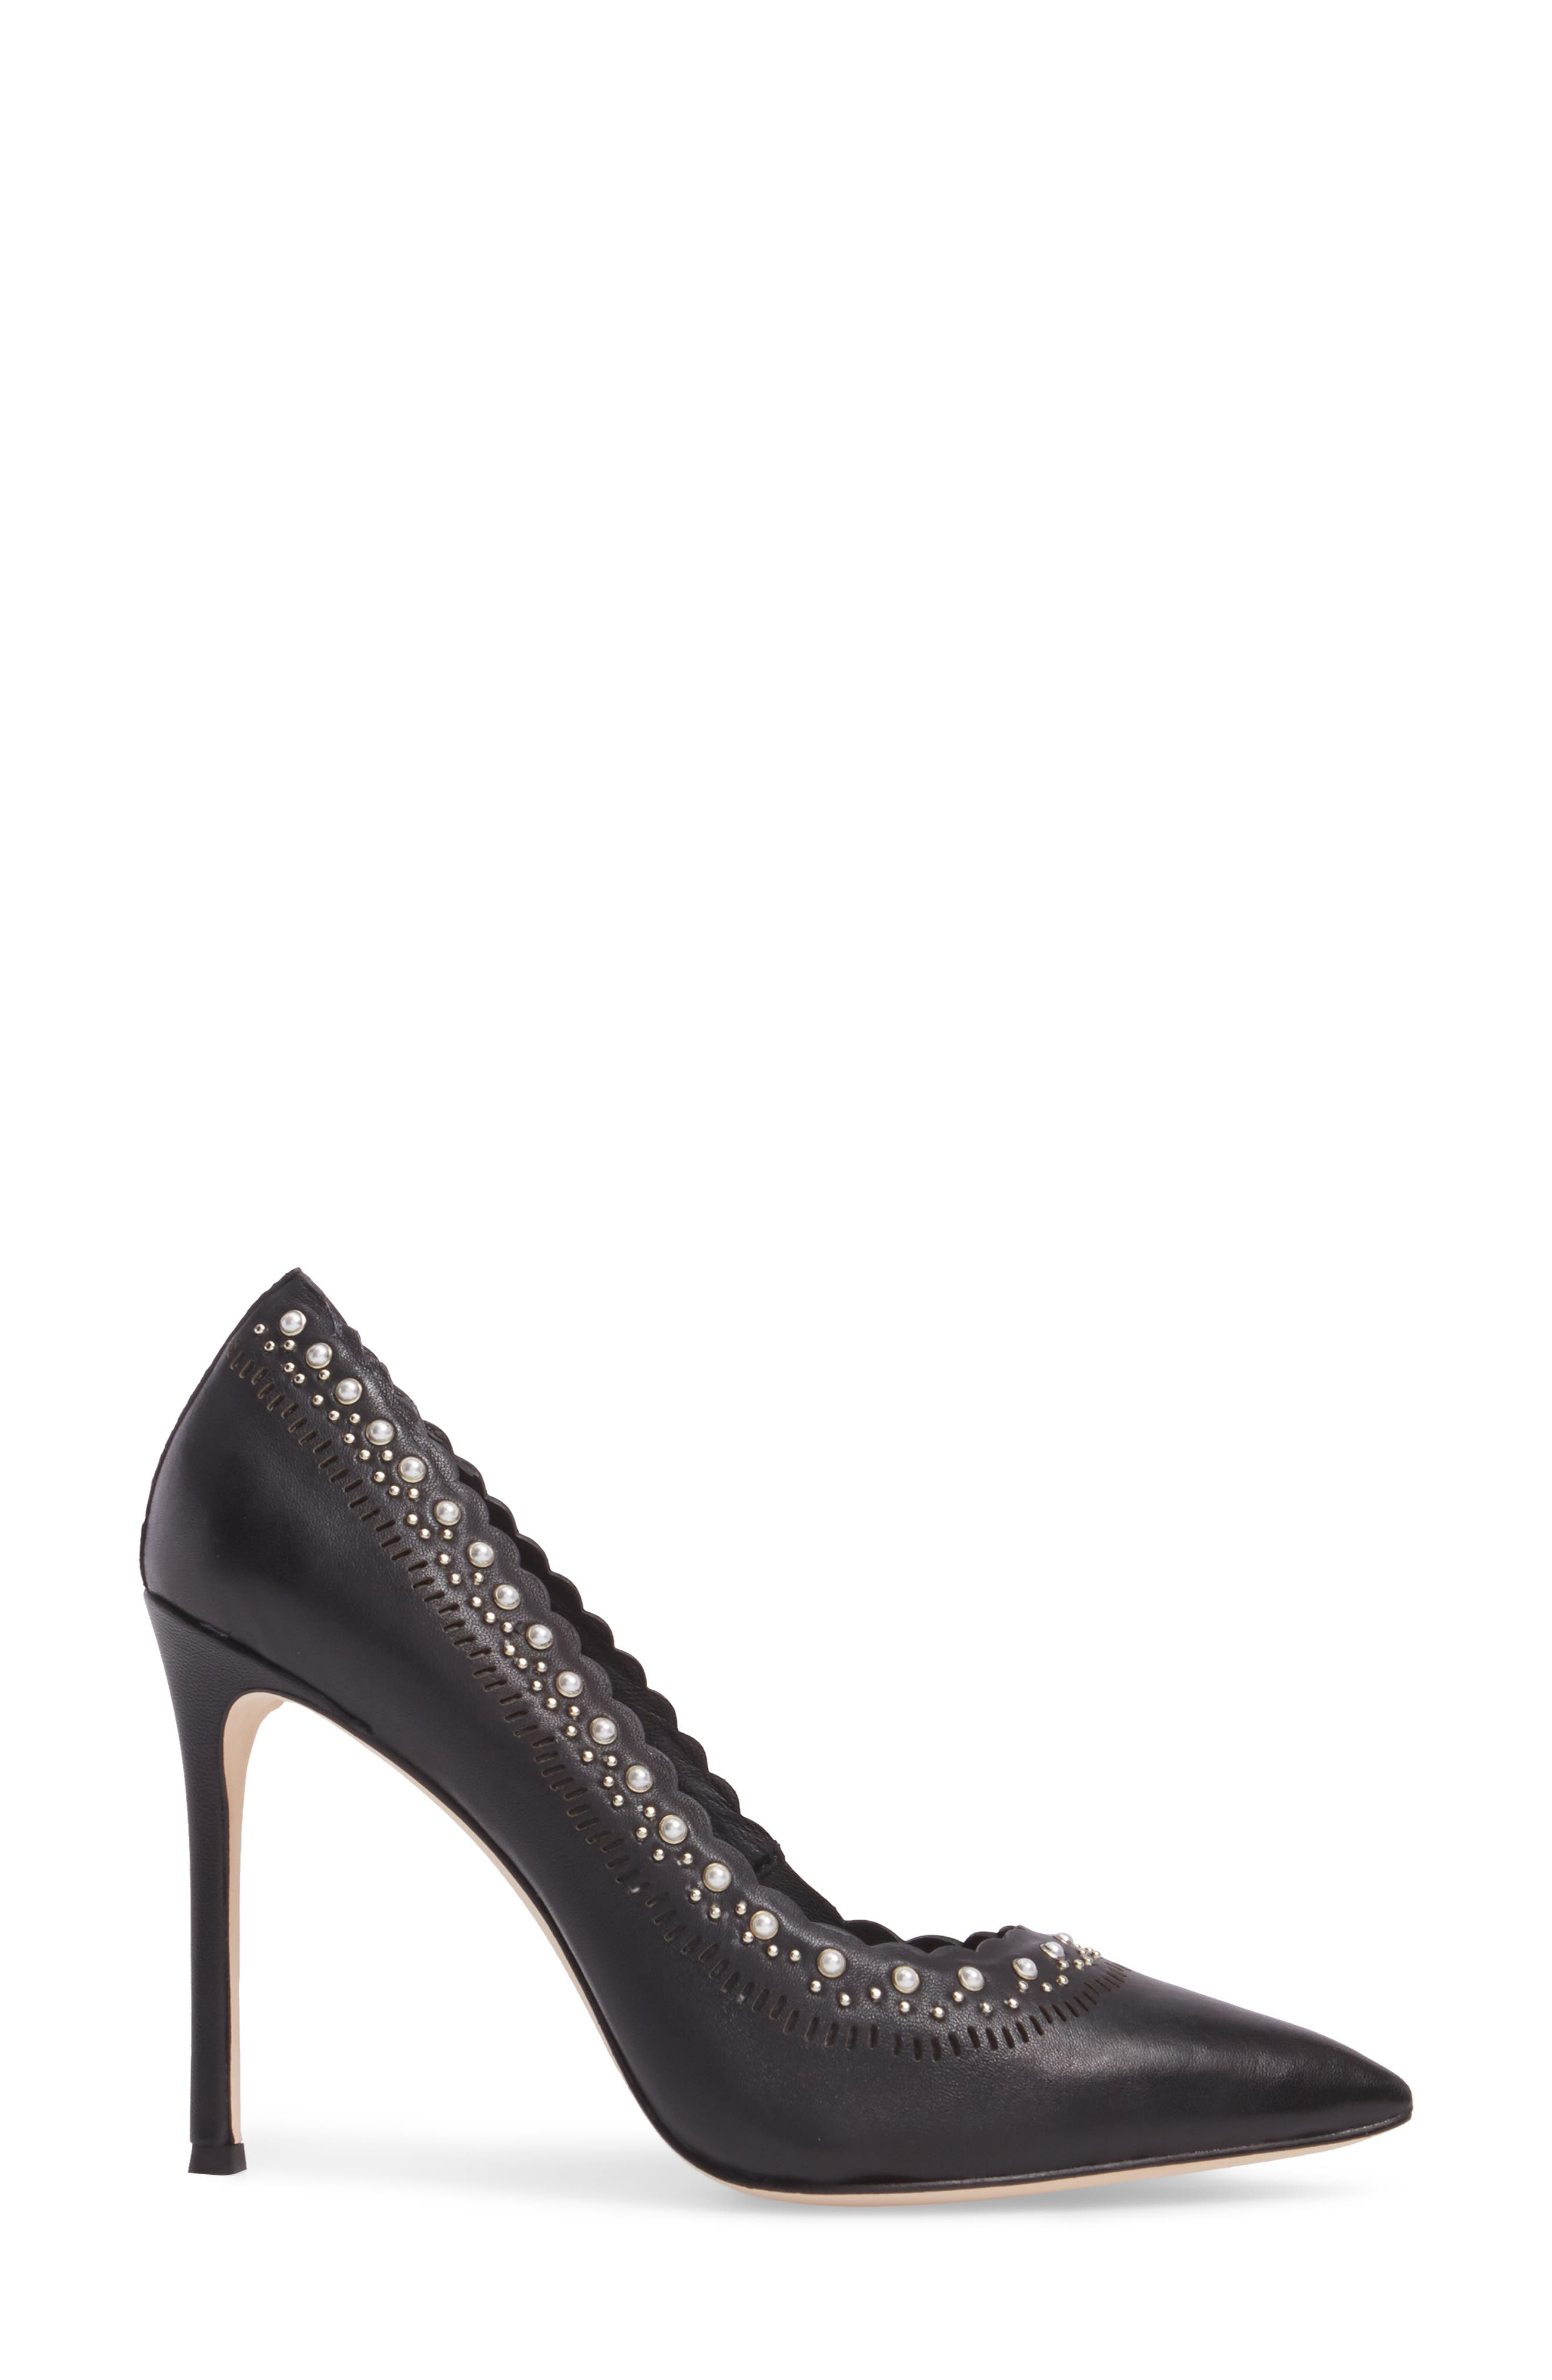 Cerella Embellished Pump,                             Alternate thumbnail 3, color,                             Black Leather